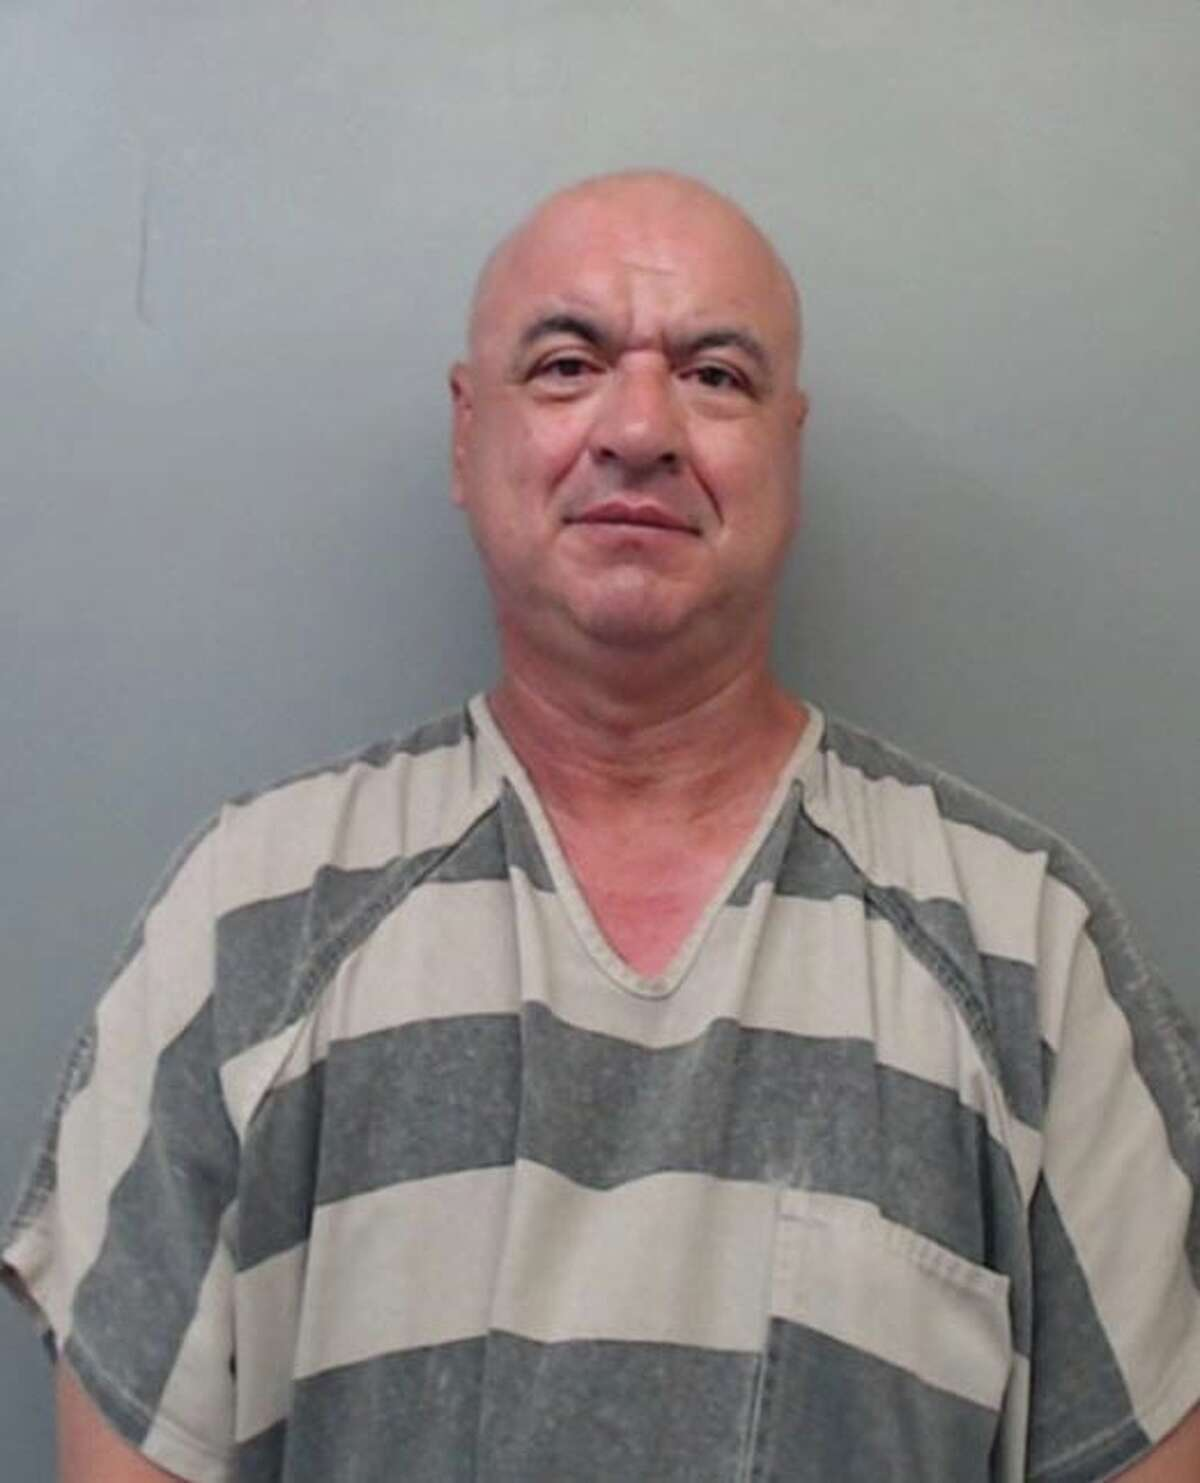 Francisco Vela Jr., 51, was charged with cruelty to non-livestock animals.